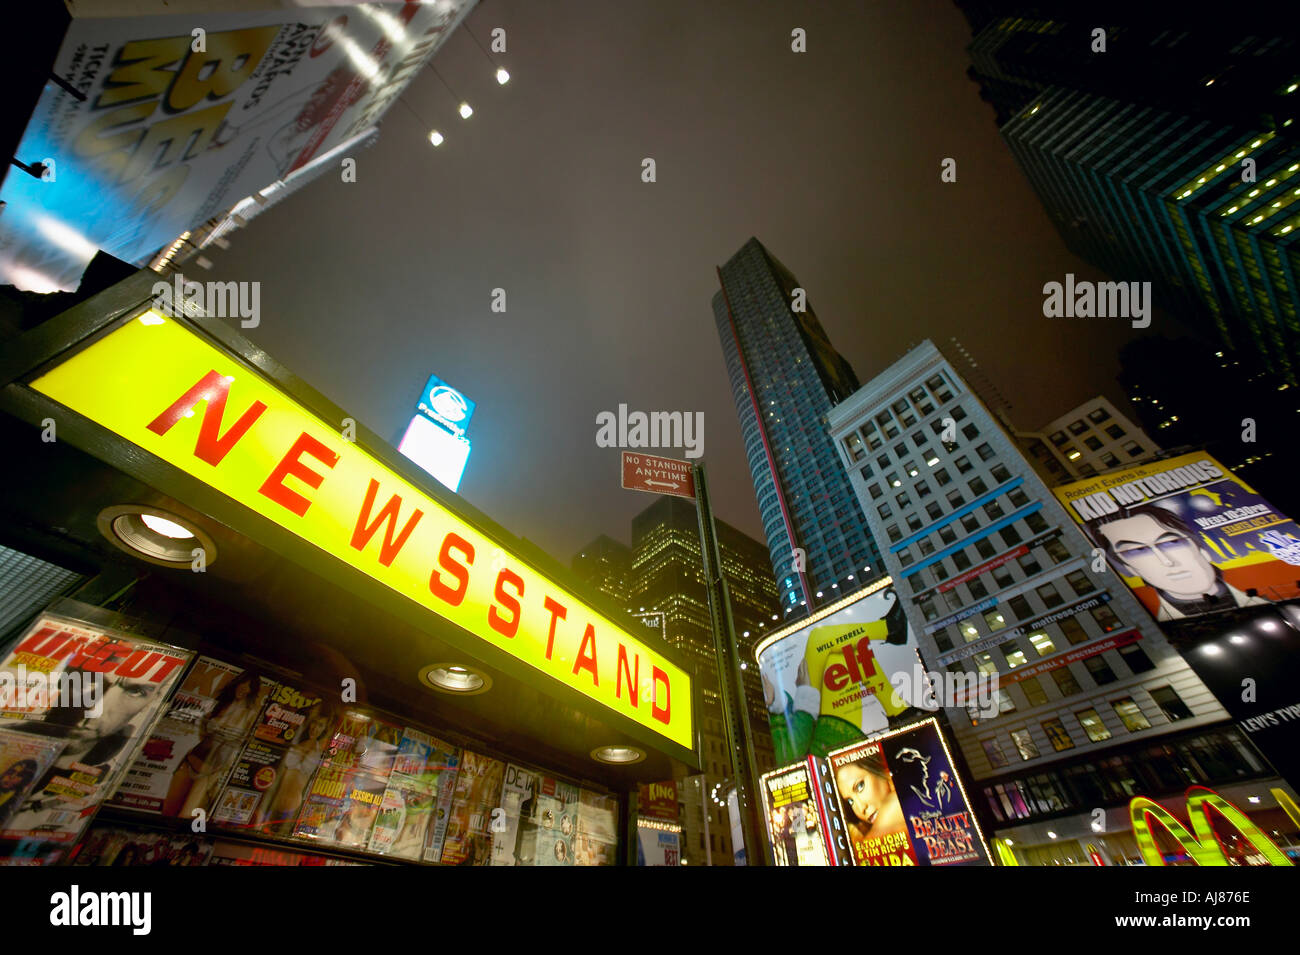 News Stand in Times Square Midtown Manhattan New York NY - Stock Image